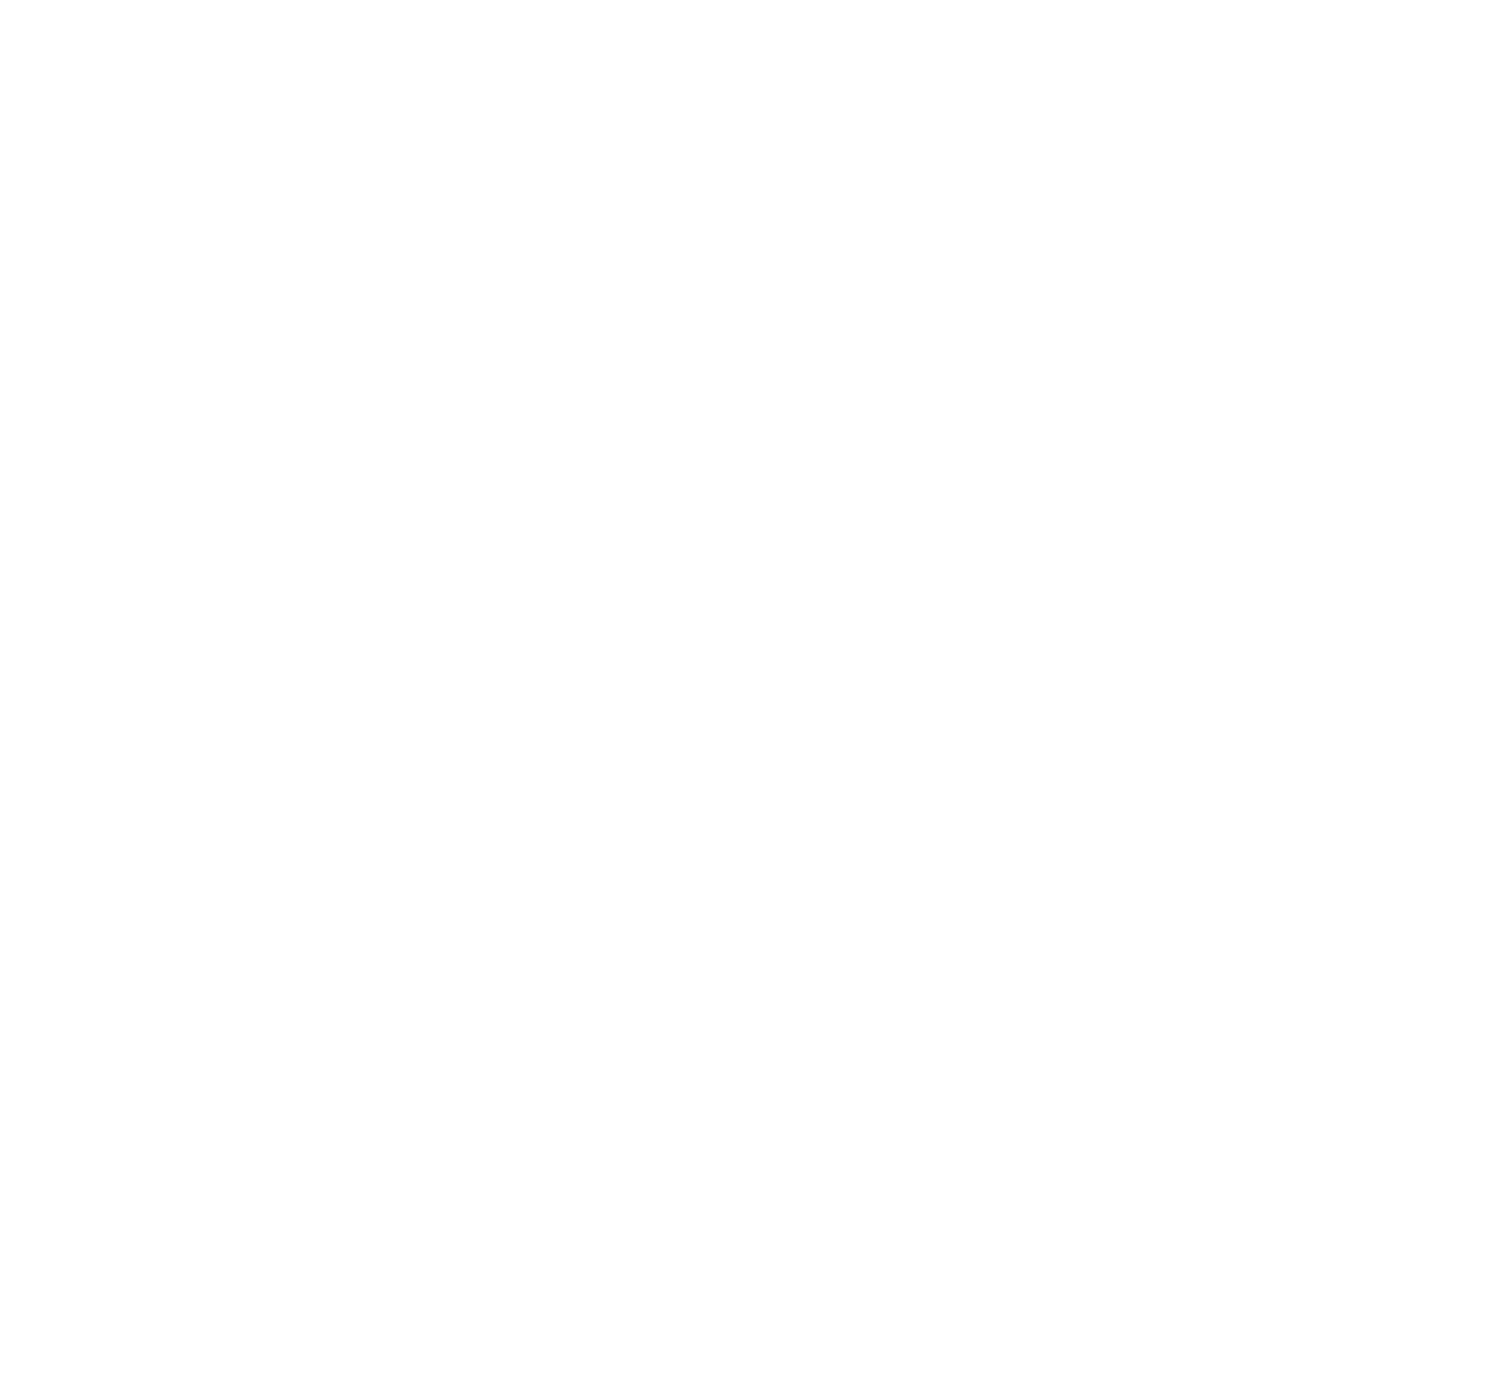 Chico Salt Company